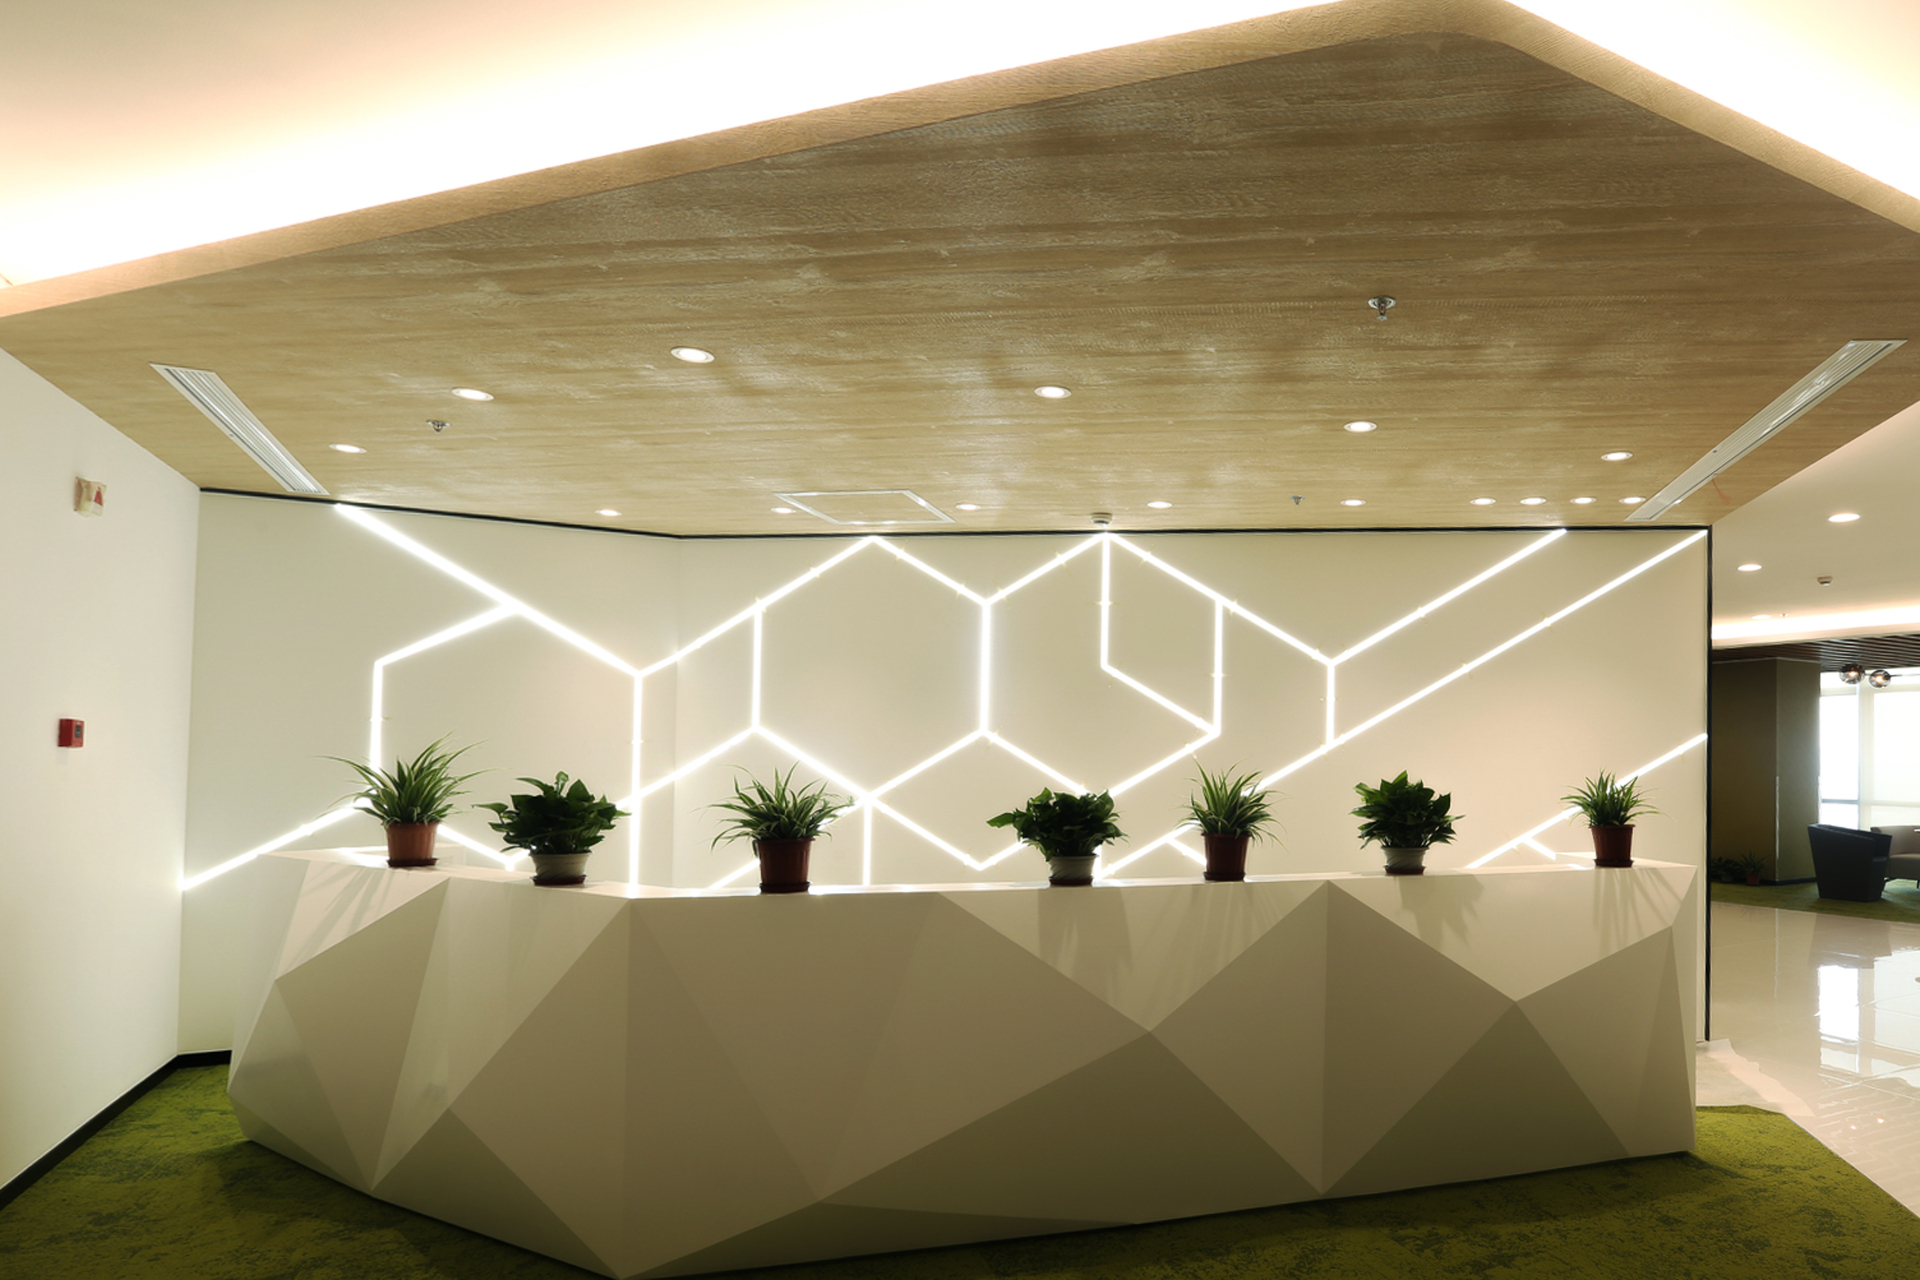 The reception area desk features in-wall LED lighting for a uniquely eye-catching display for guests and visitors.